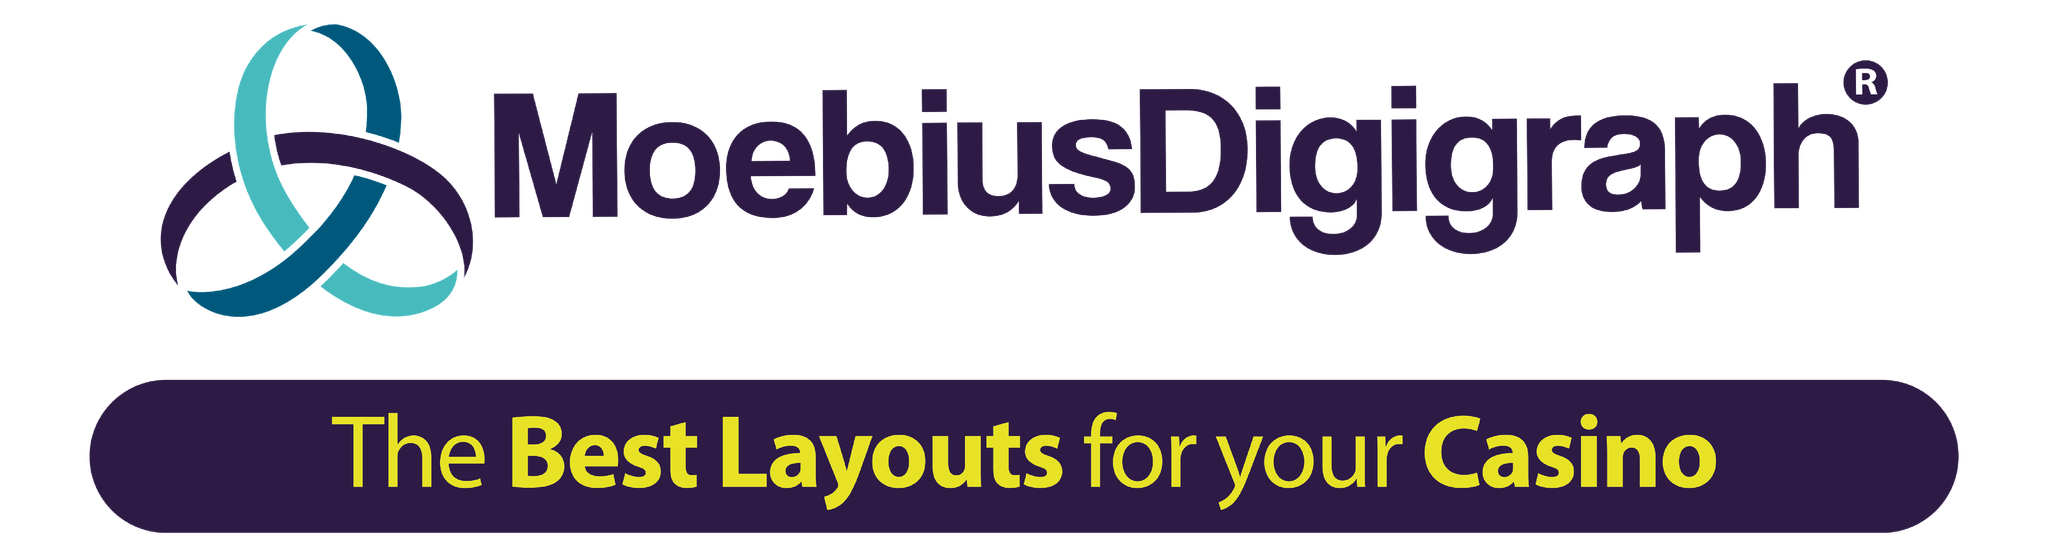 MOEBIUS DIGIGRAPH ' - THE BEST LAYOUTS FOR YOUR CASINO